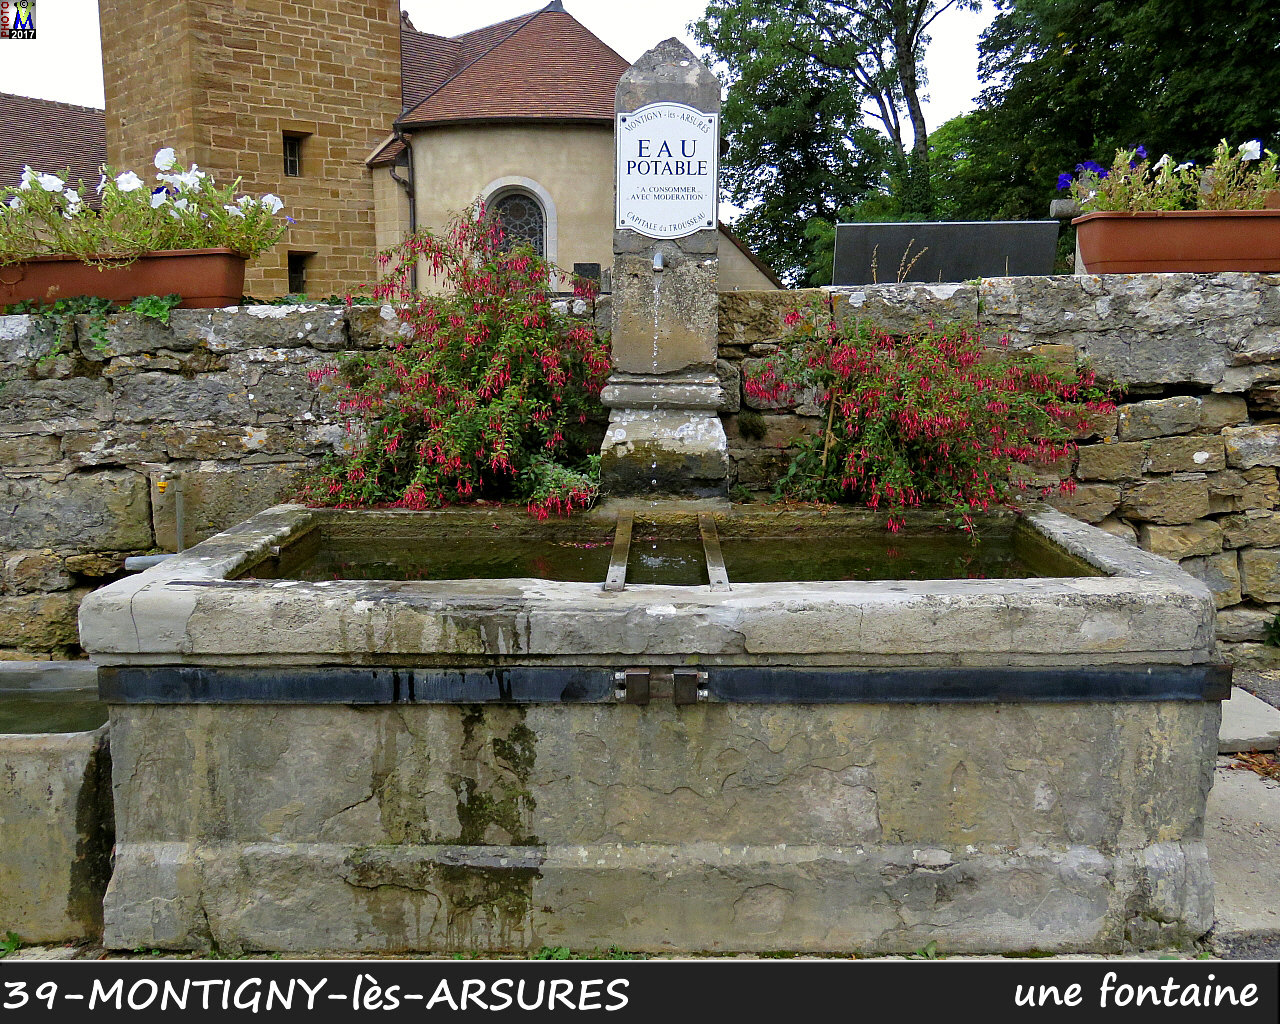 39MONTIGNY-les-ARSURES_fontaine_100.jpg